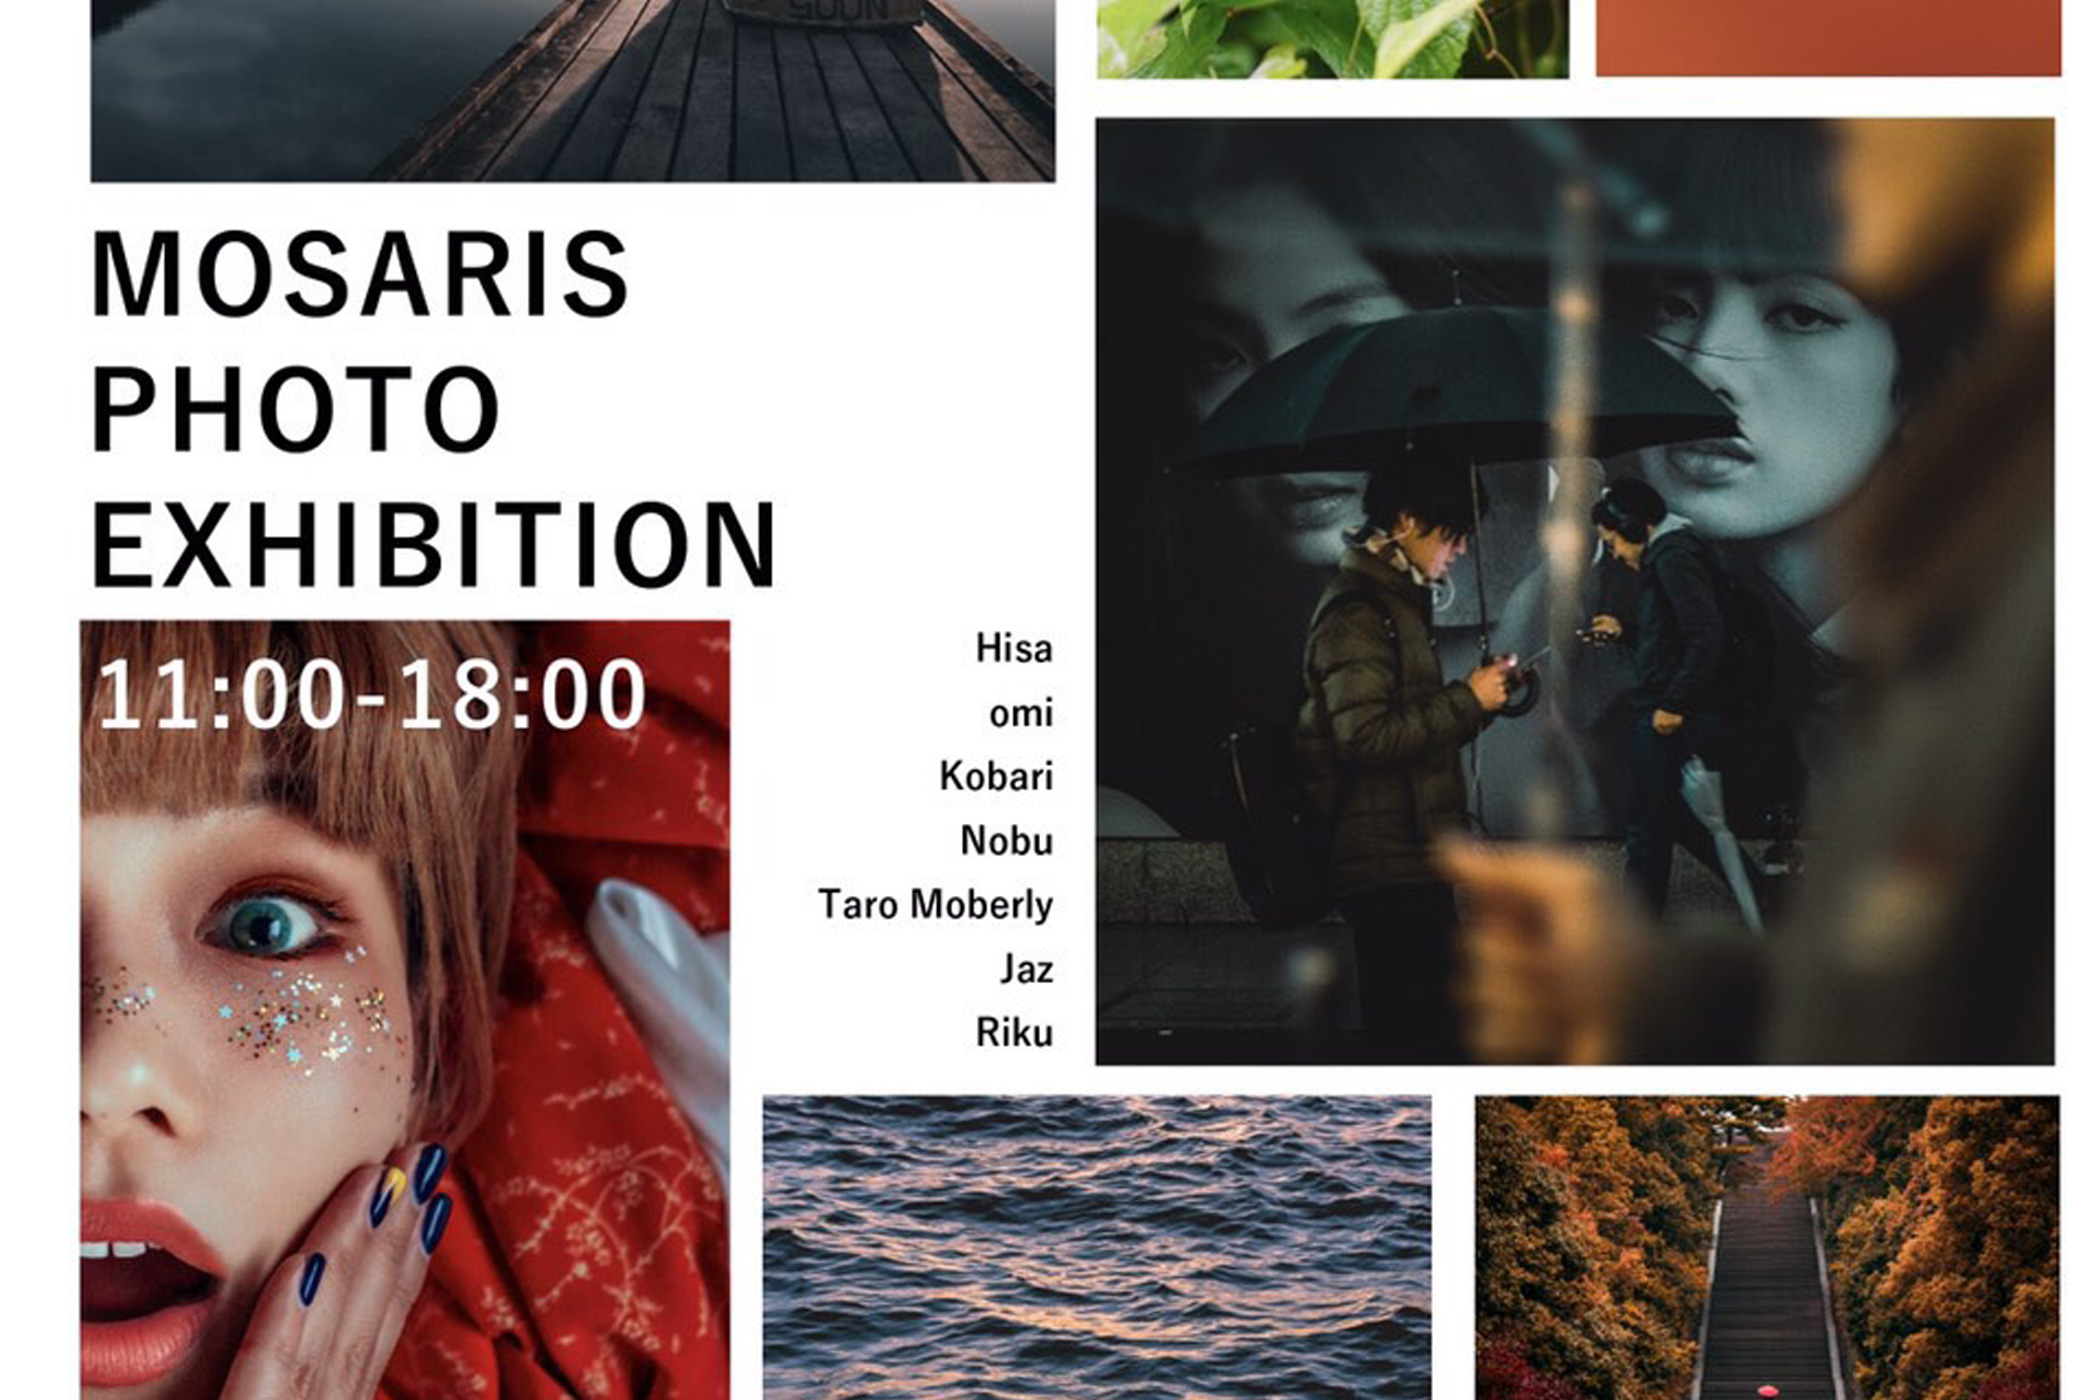 MOSARIS PHOTO EXHIBITION